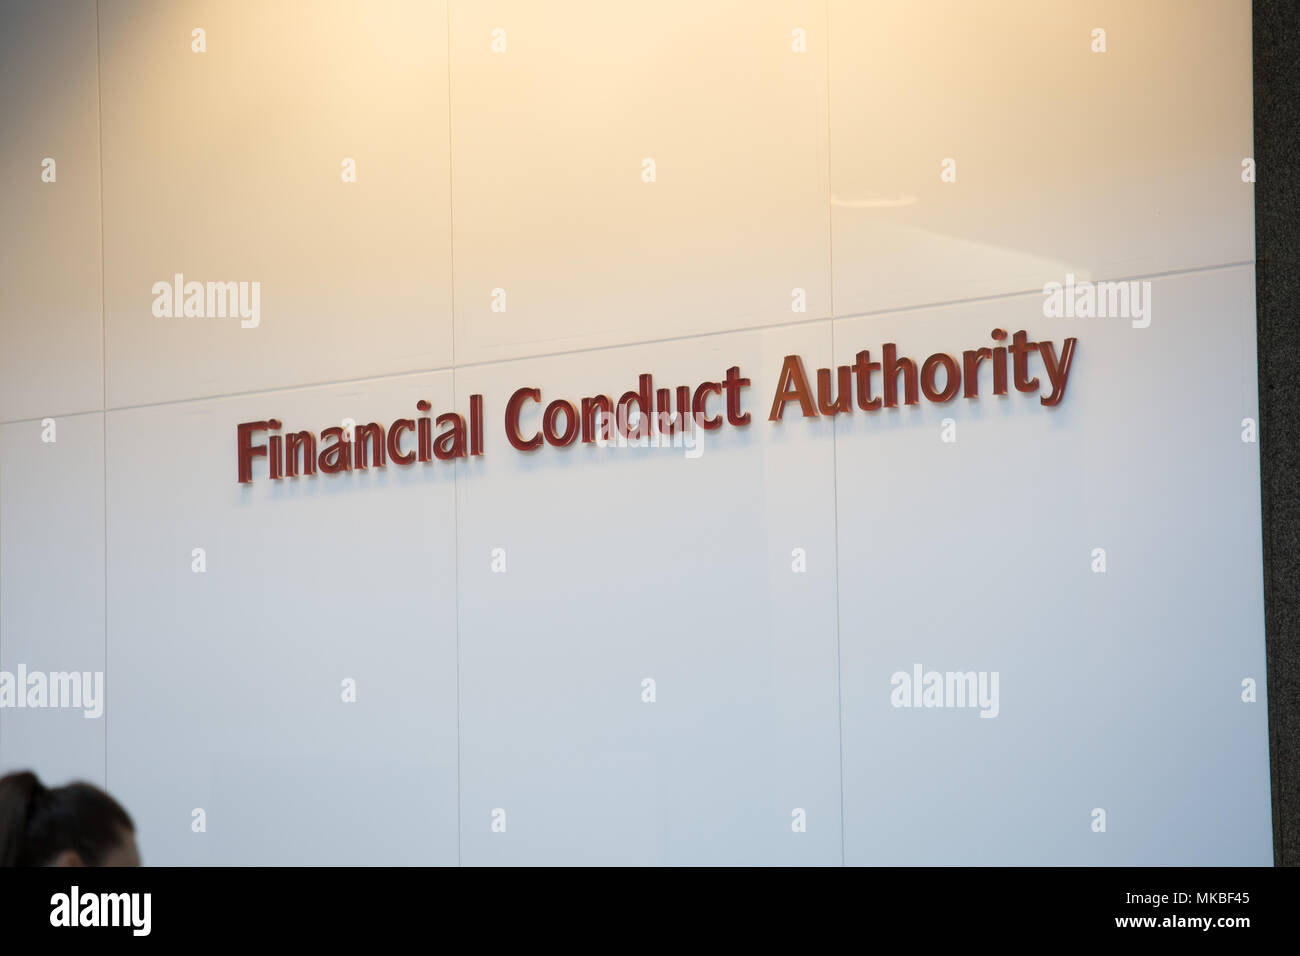 Financial Conduct Authority (FCA) offices, North Colonnade, Docklands, London. Reception showing corporate logo with employees entering through securi - Stock Image